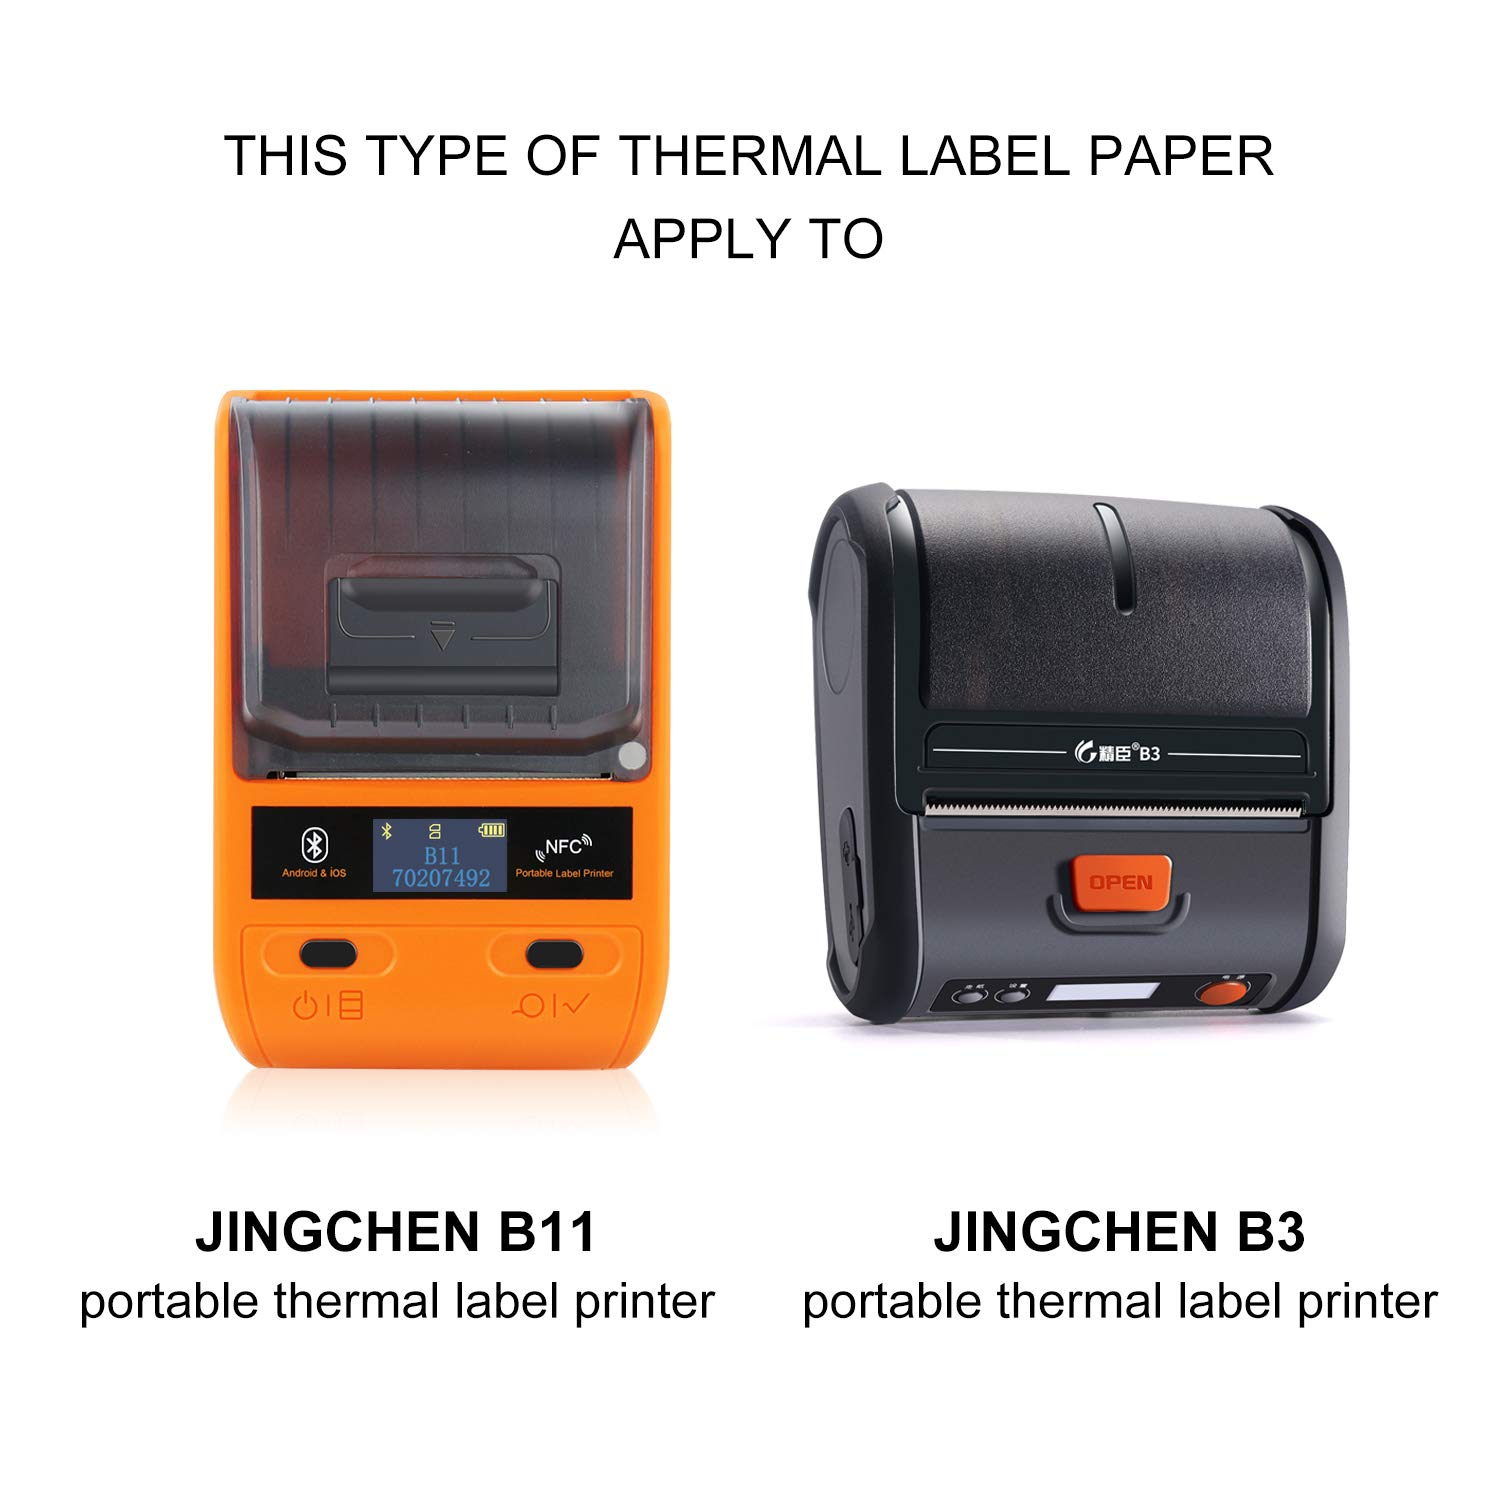 """JINGCHEN Thermal Label Paper, Print with B11/B3, Widely Used in Inventory/Food/Supermarkets/Clothing & Shoes & Hats, Label Printing, 1.57""""x1.18"""", 230 Labels/Roll by JINGCHEN (Image #6)"""